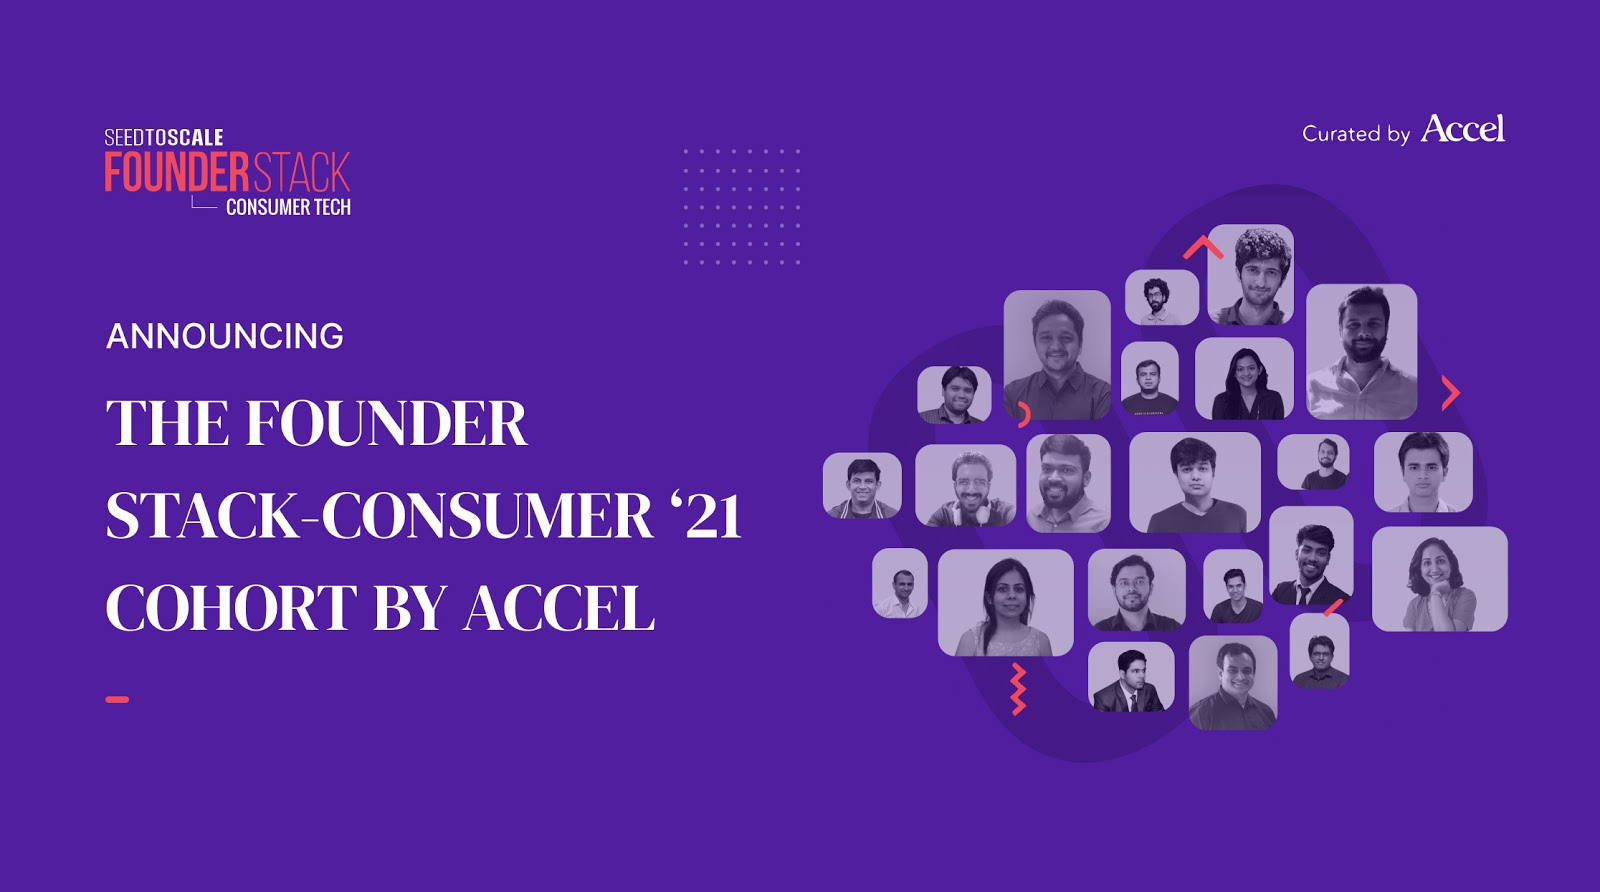 Accel presents The Founder Stack - Consumer Cohort of '21